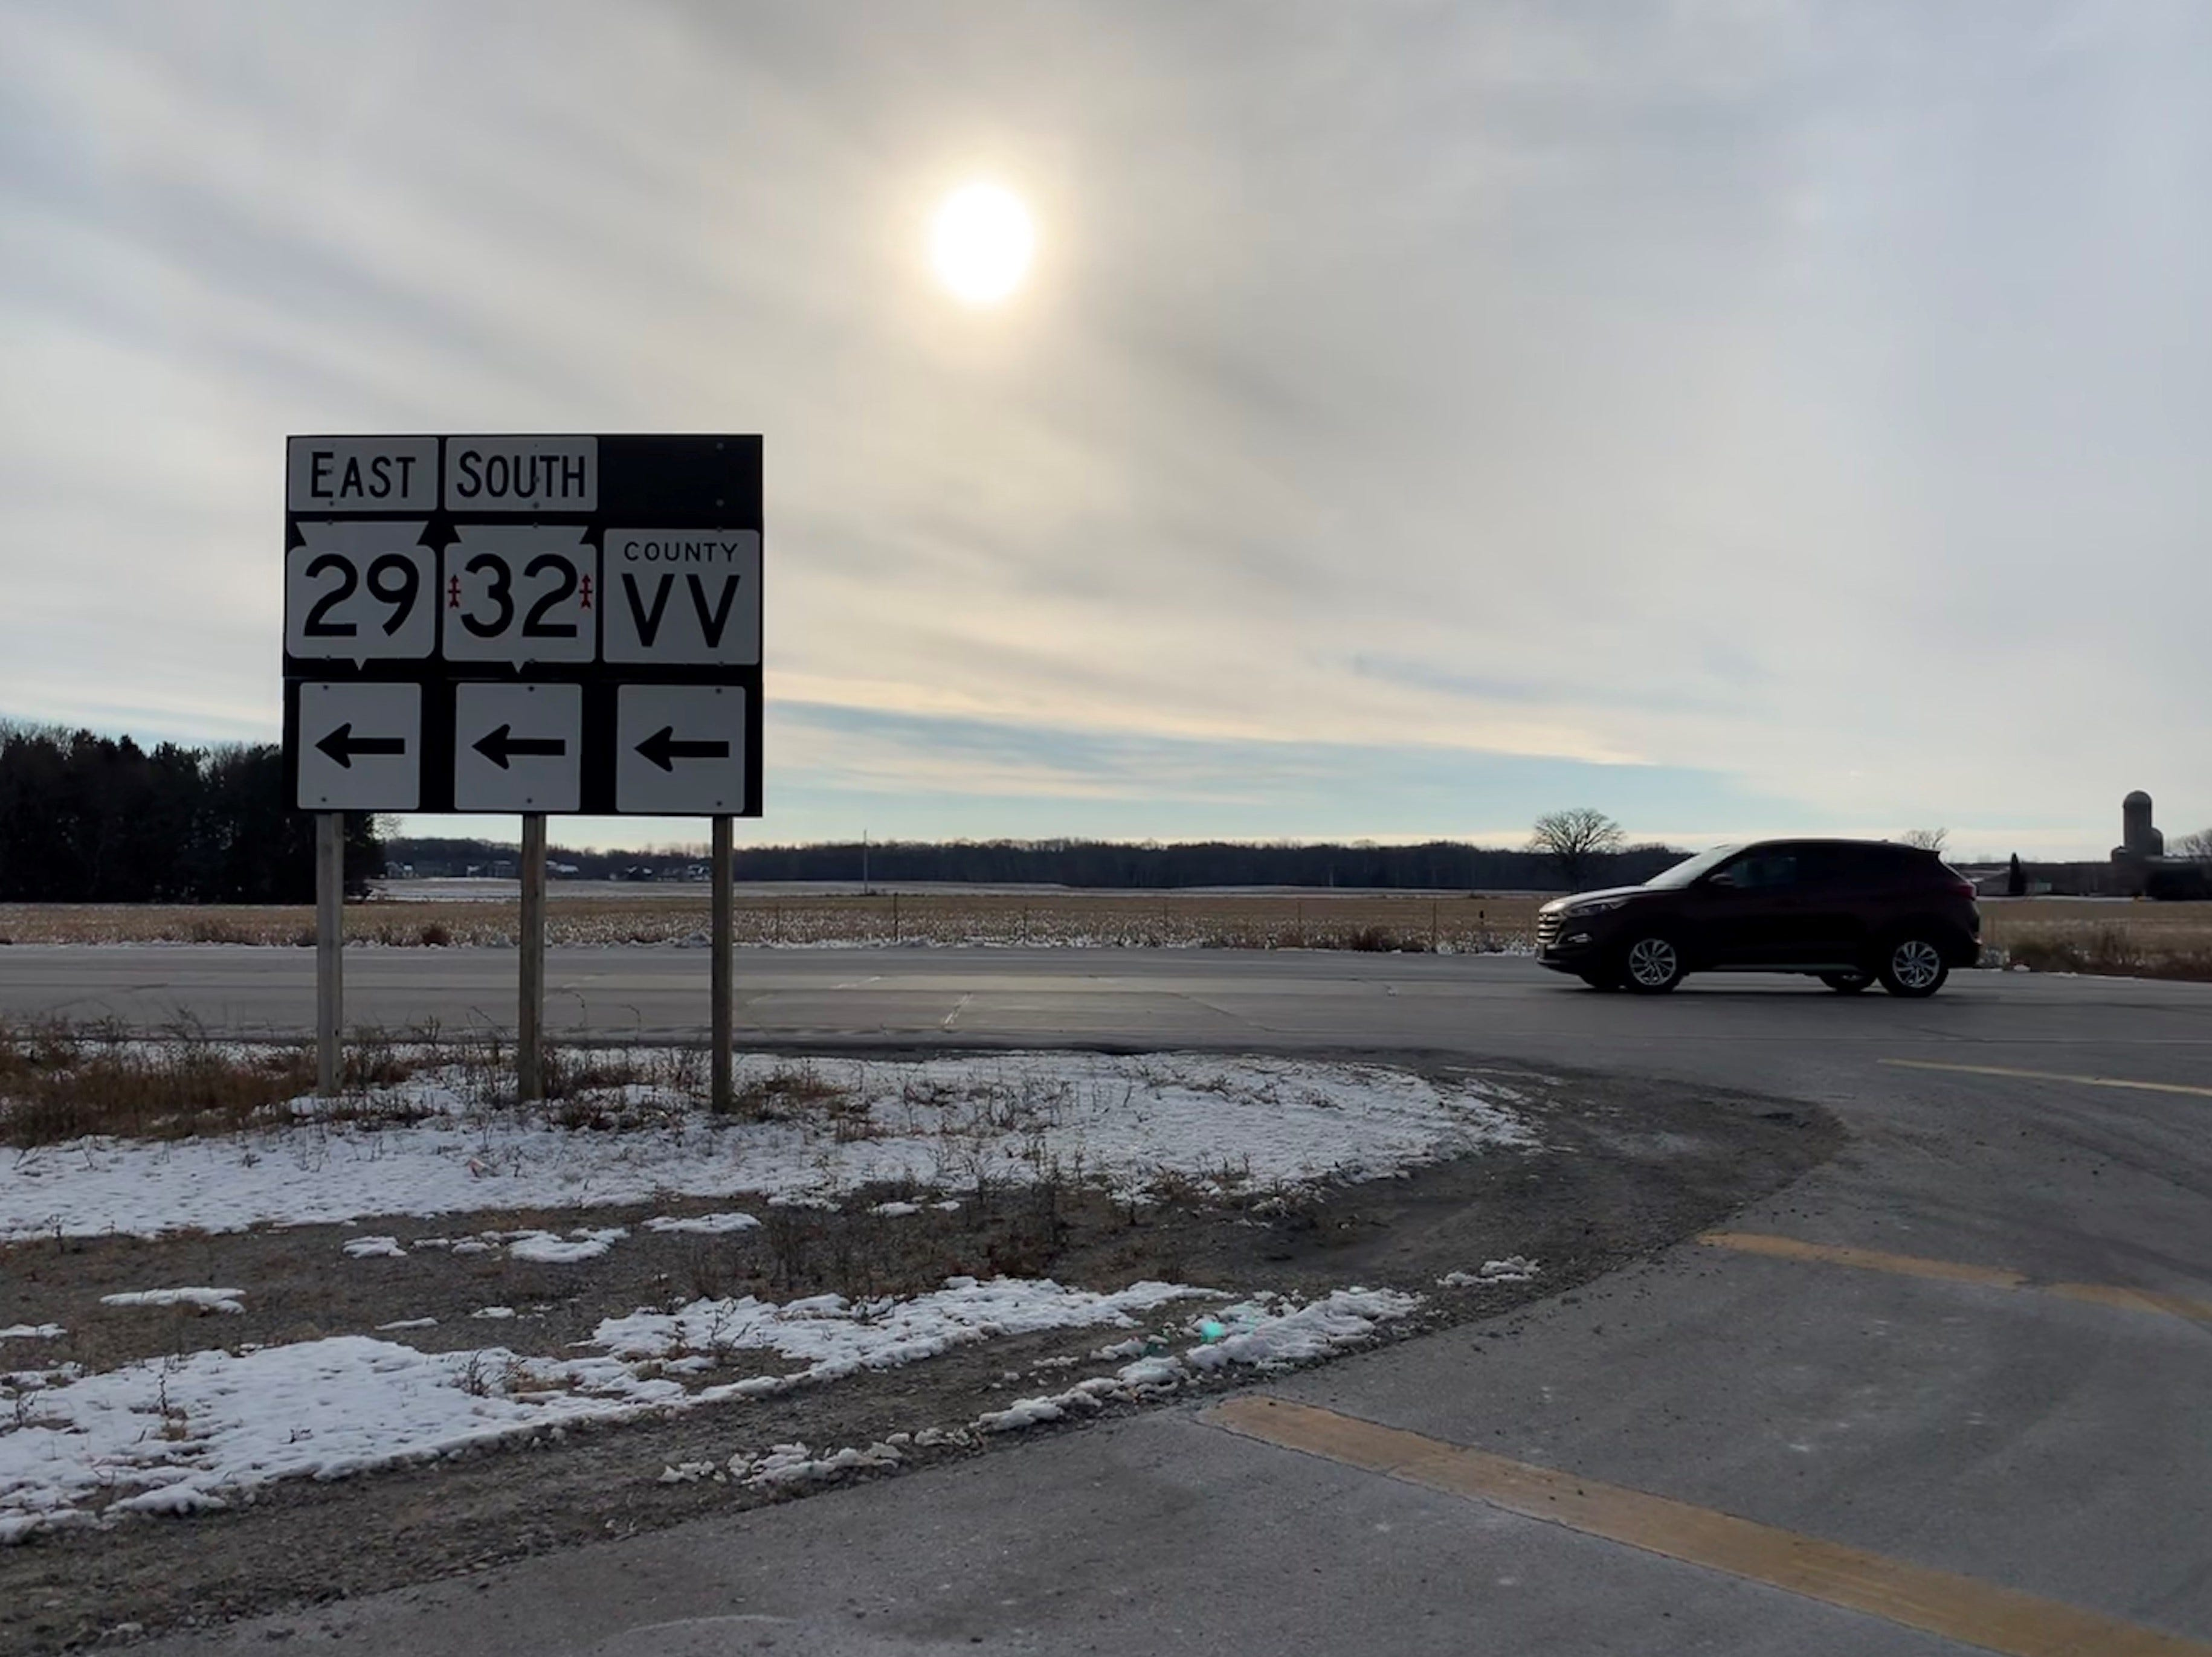 Proposed Highway 29-Brown County VV interchange gets $20 million boost from feds